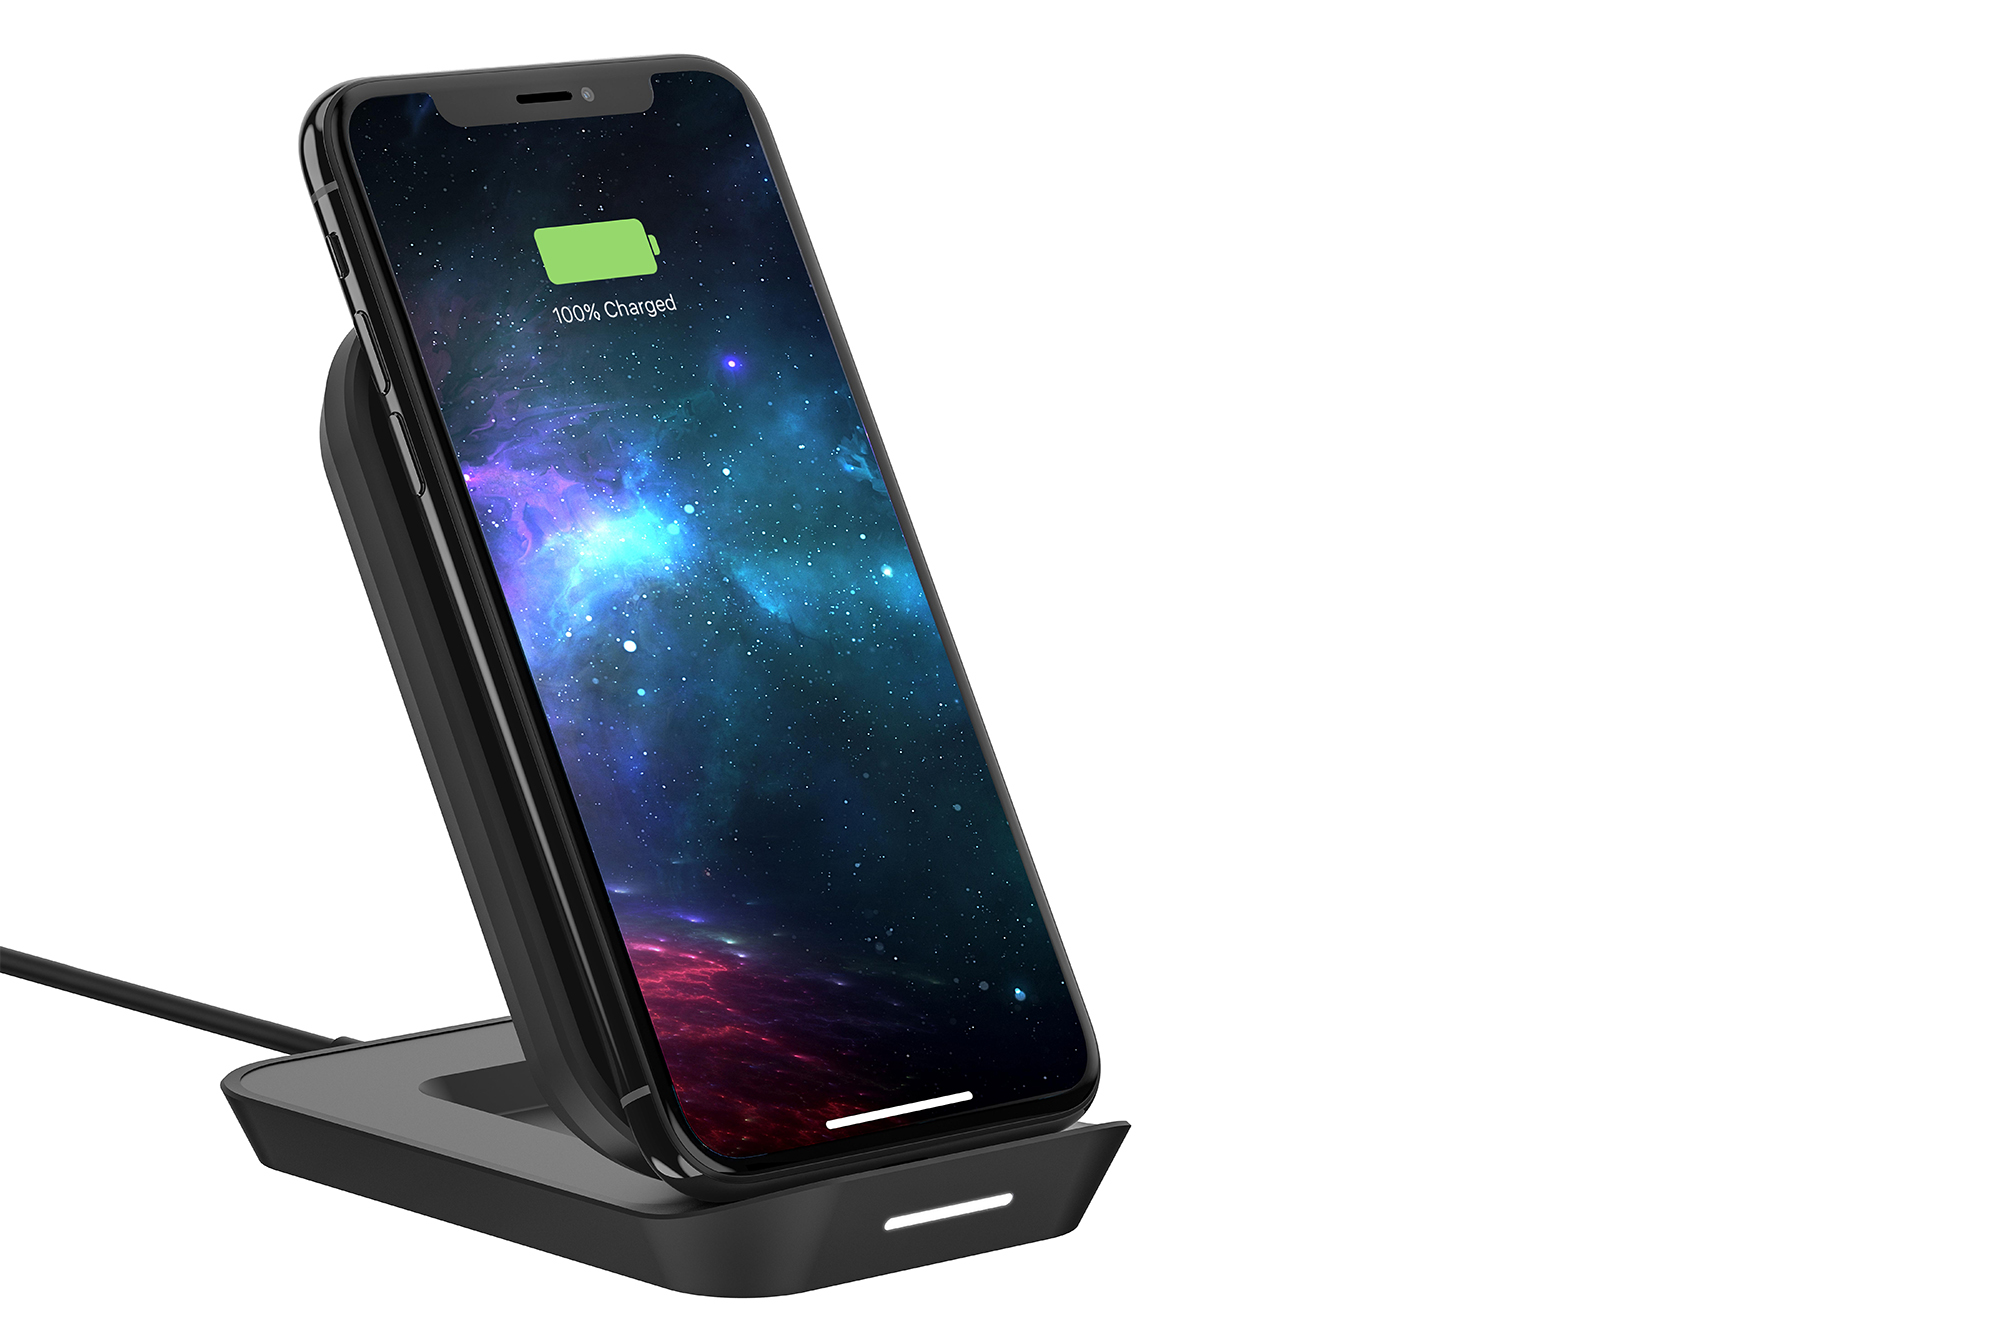 mophie's Wireless Charging Stand's Available at Apple Store, Just in Time for New iPhone Launch